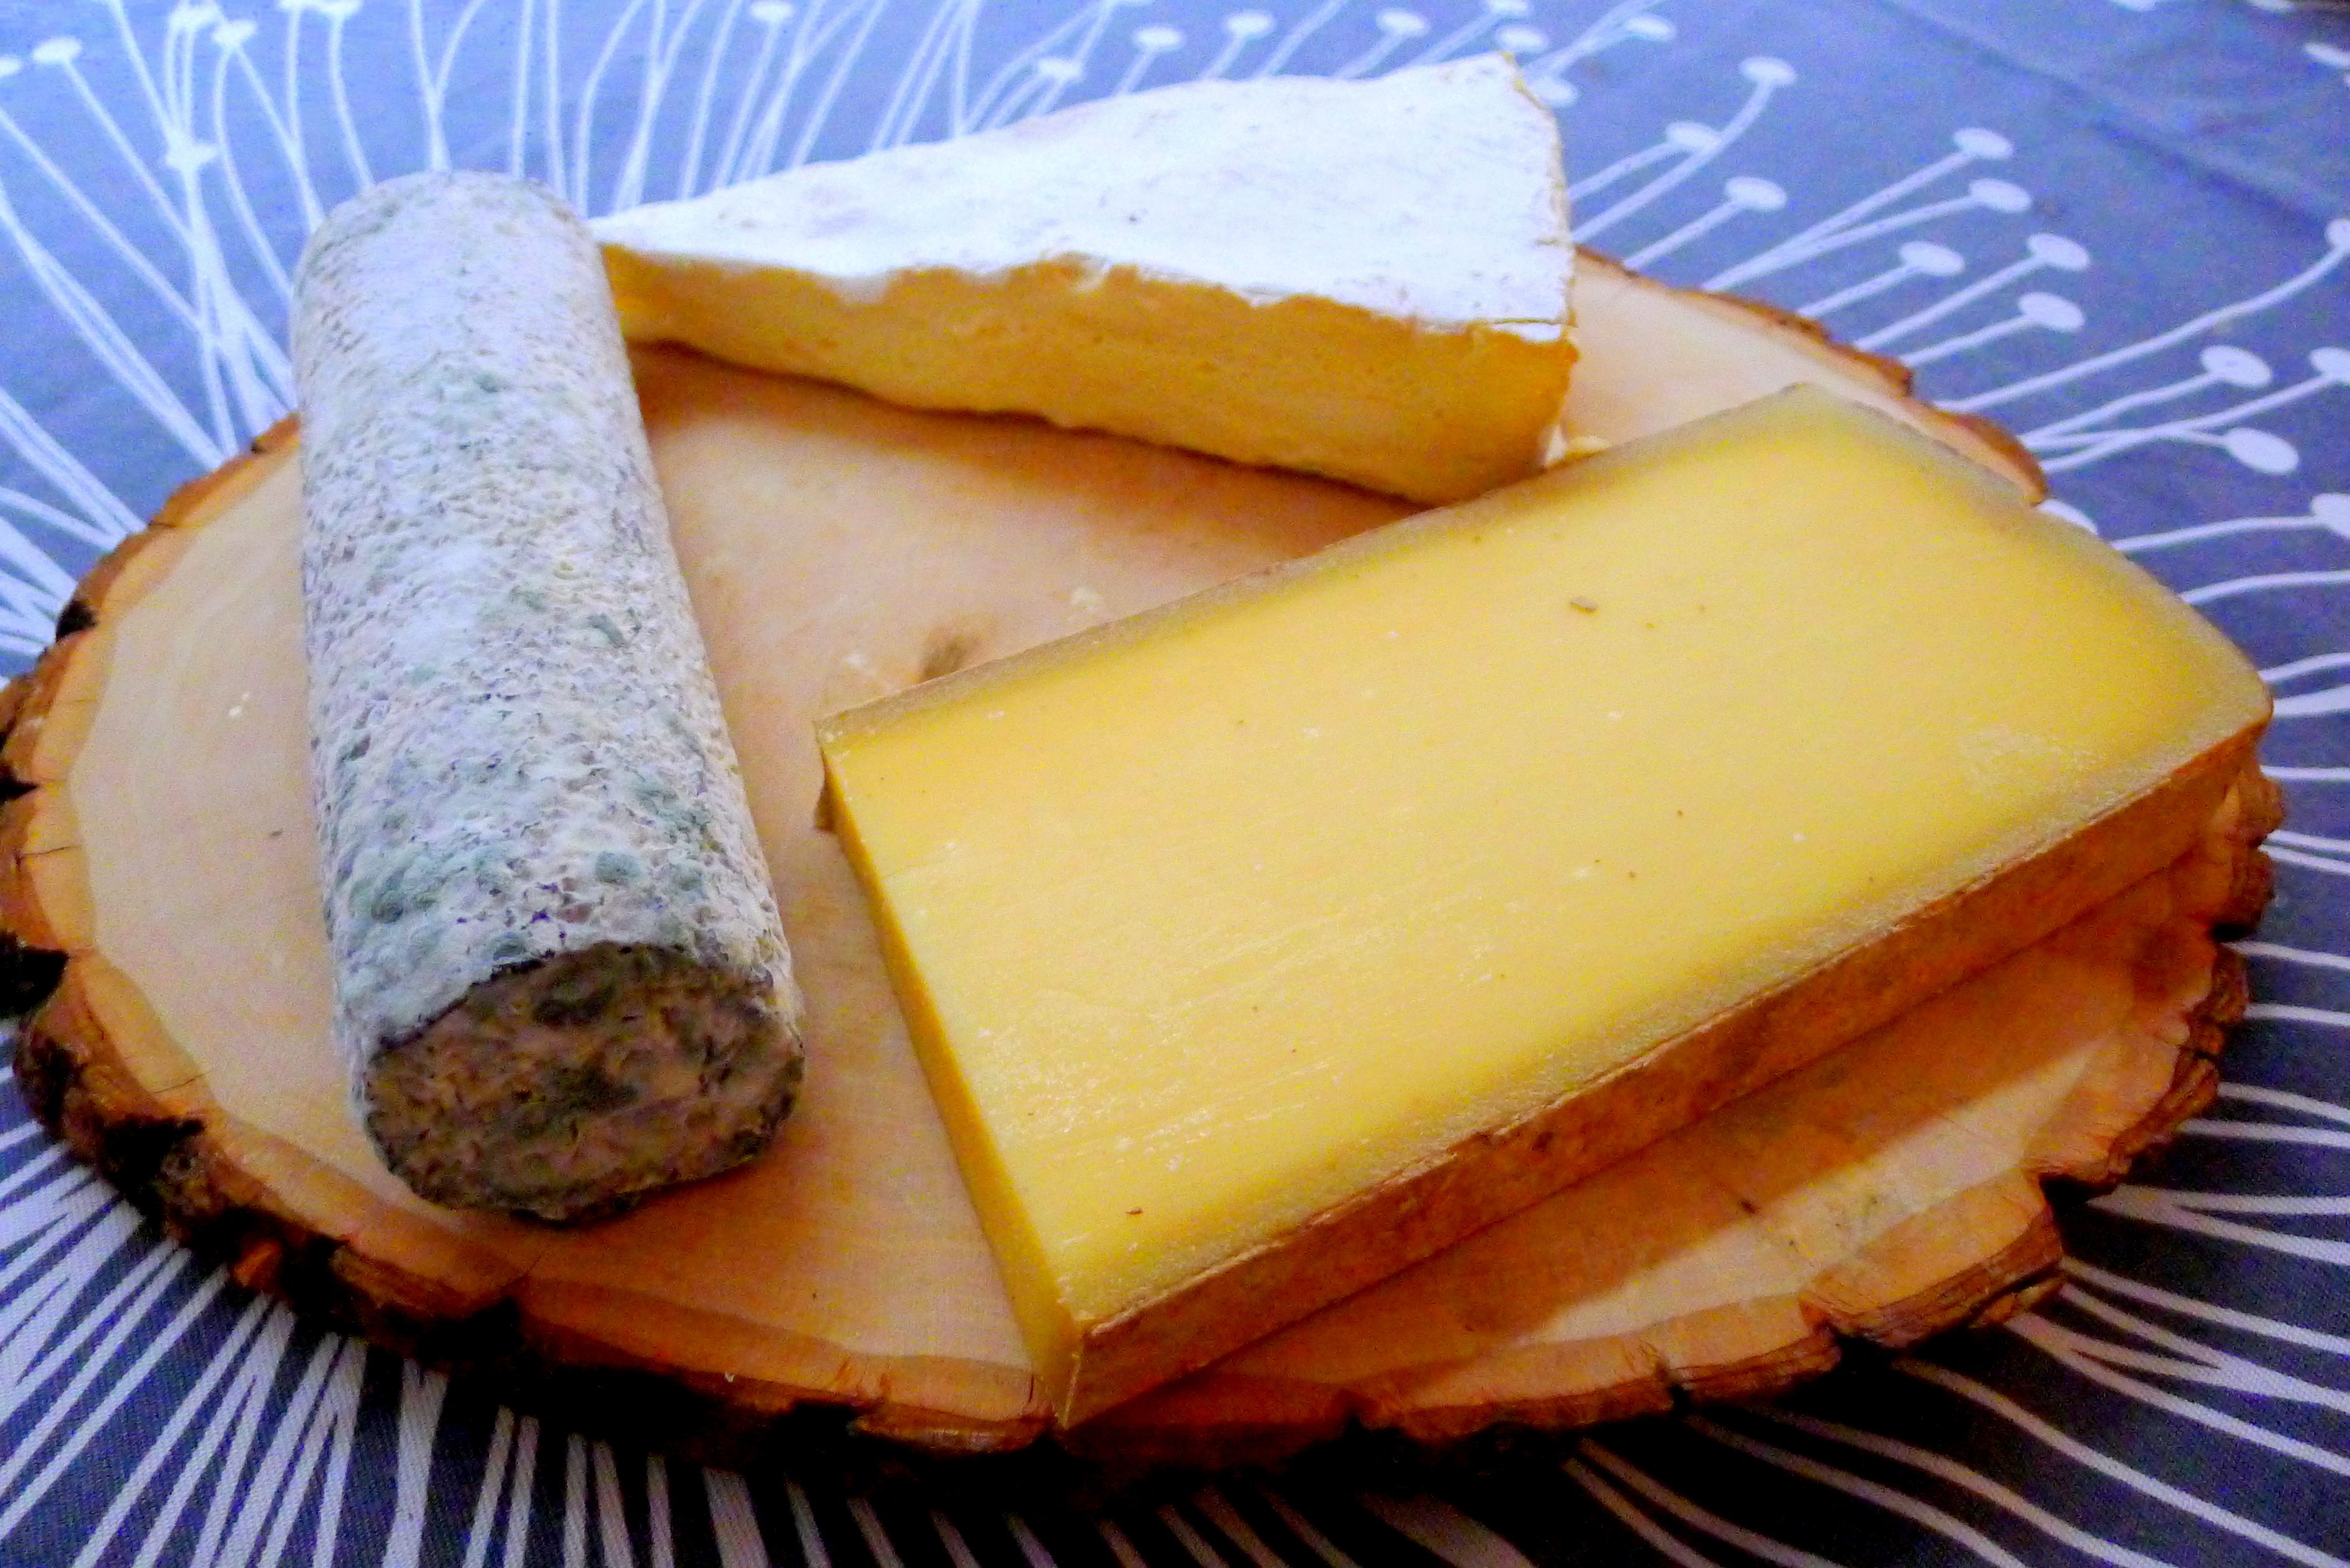 The Art of French Cheese Eating